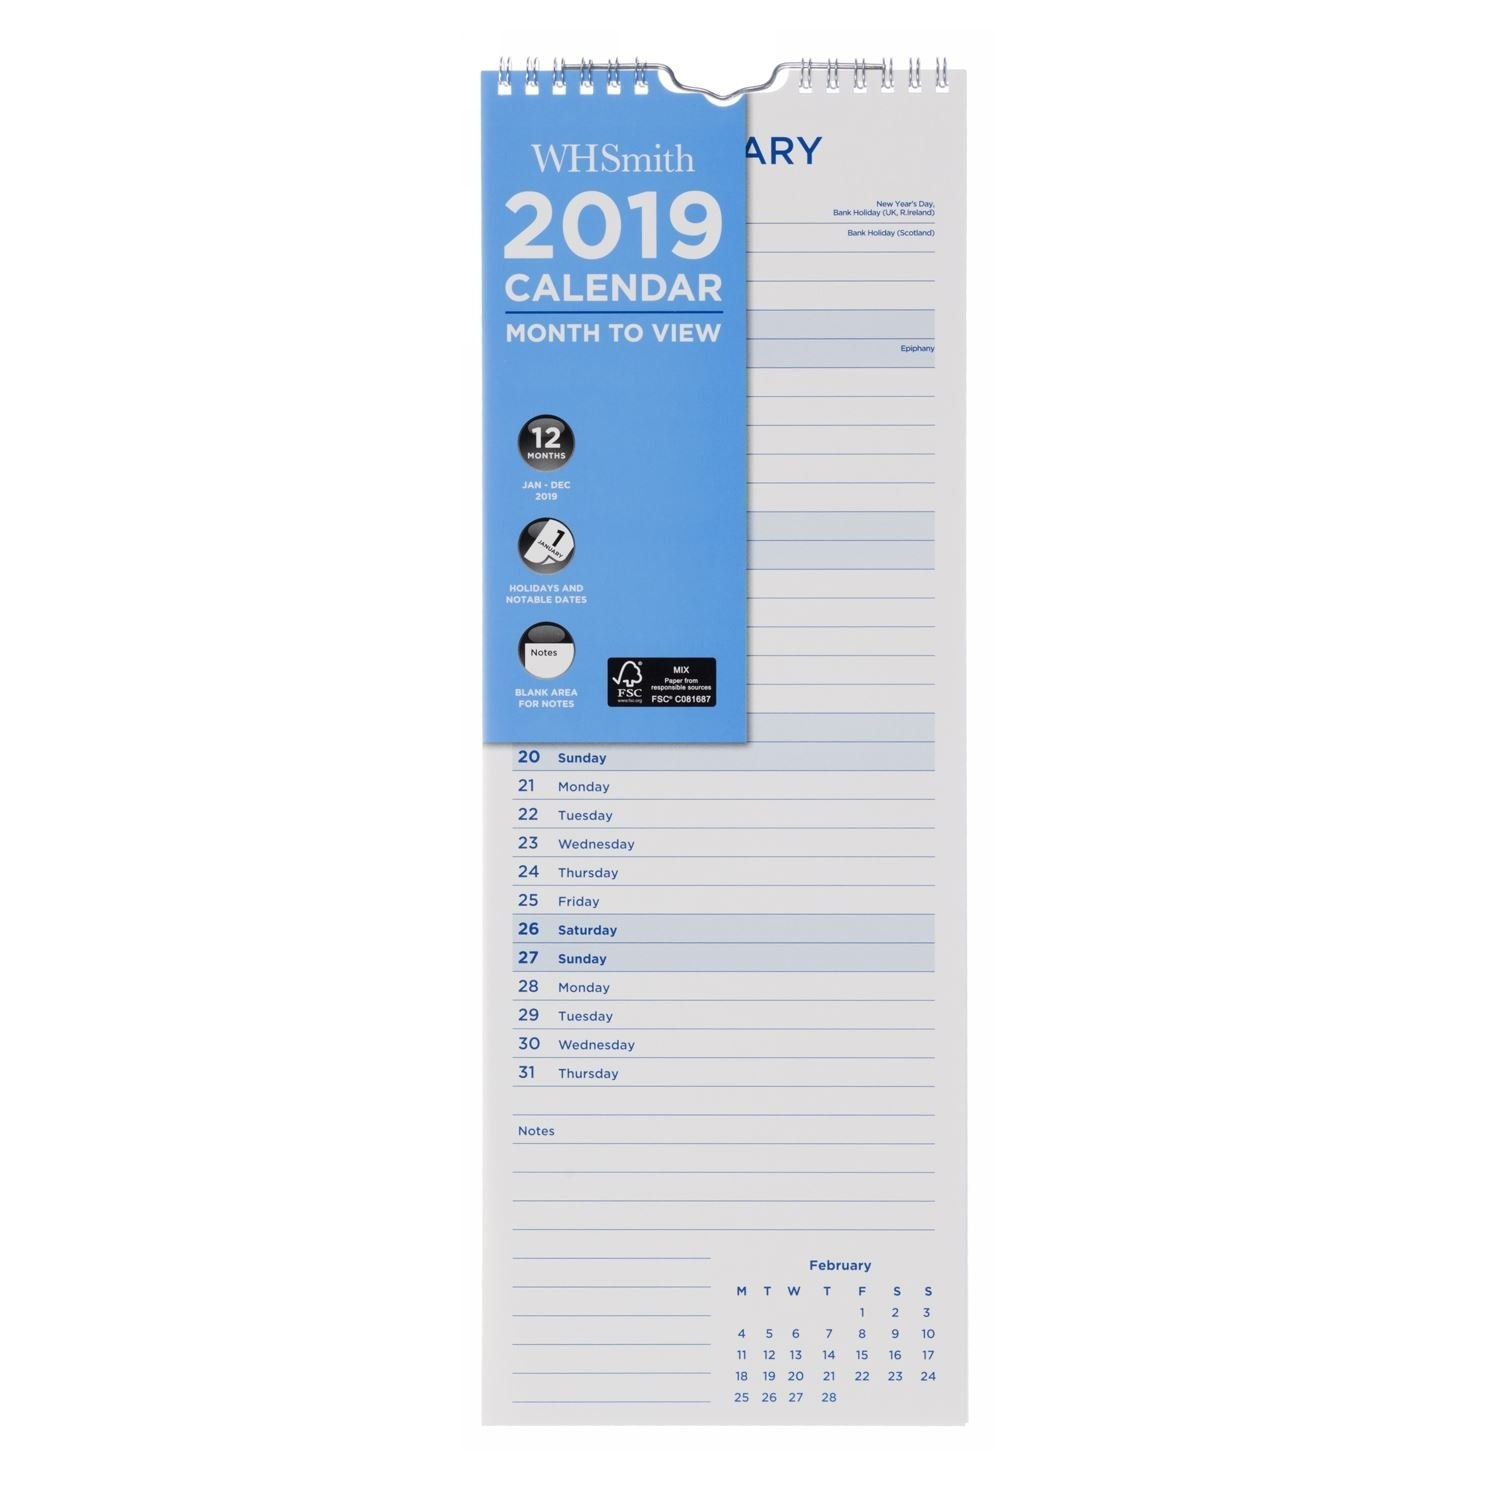 Whsmith Slim Wall Calendar 2019 Month To View Wiro Binding W H Smith Calendar 2019